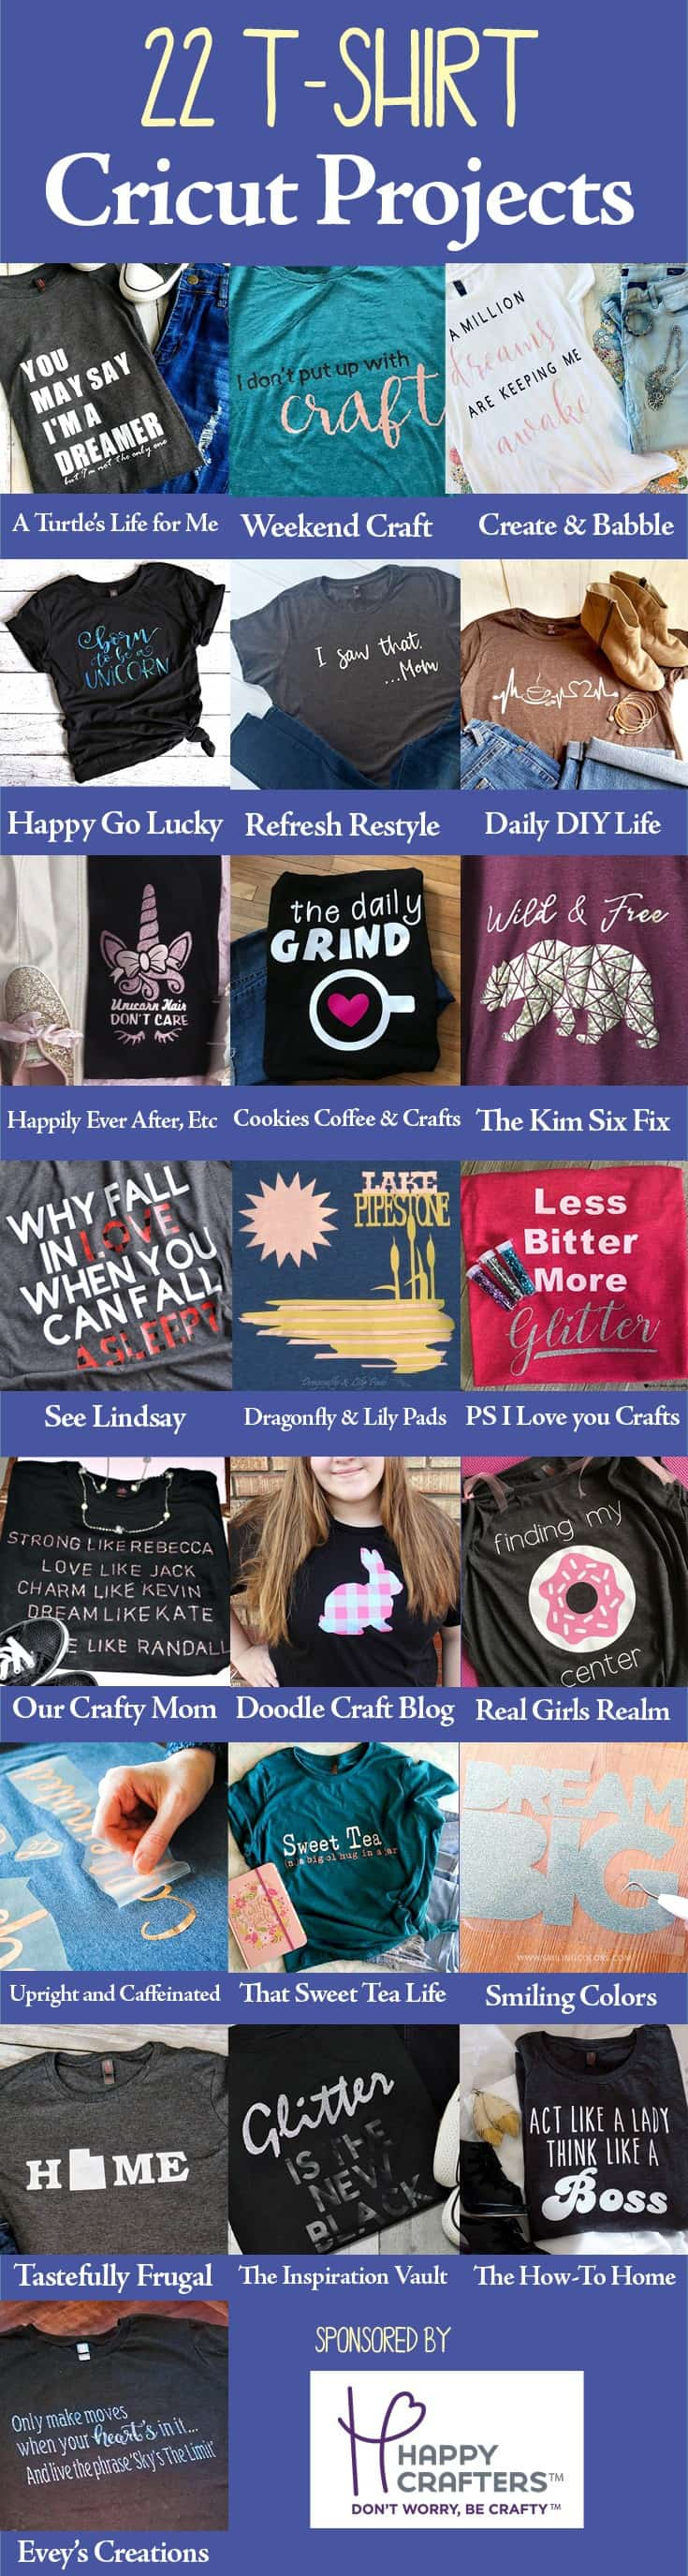 Collage of 22 T-shirts all made with a Cricut Cutting Machine